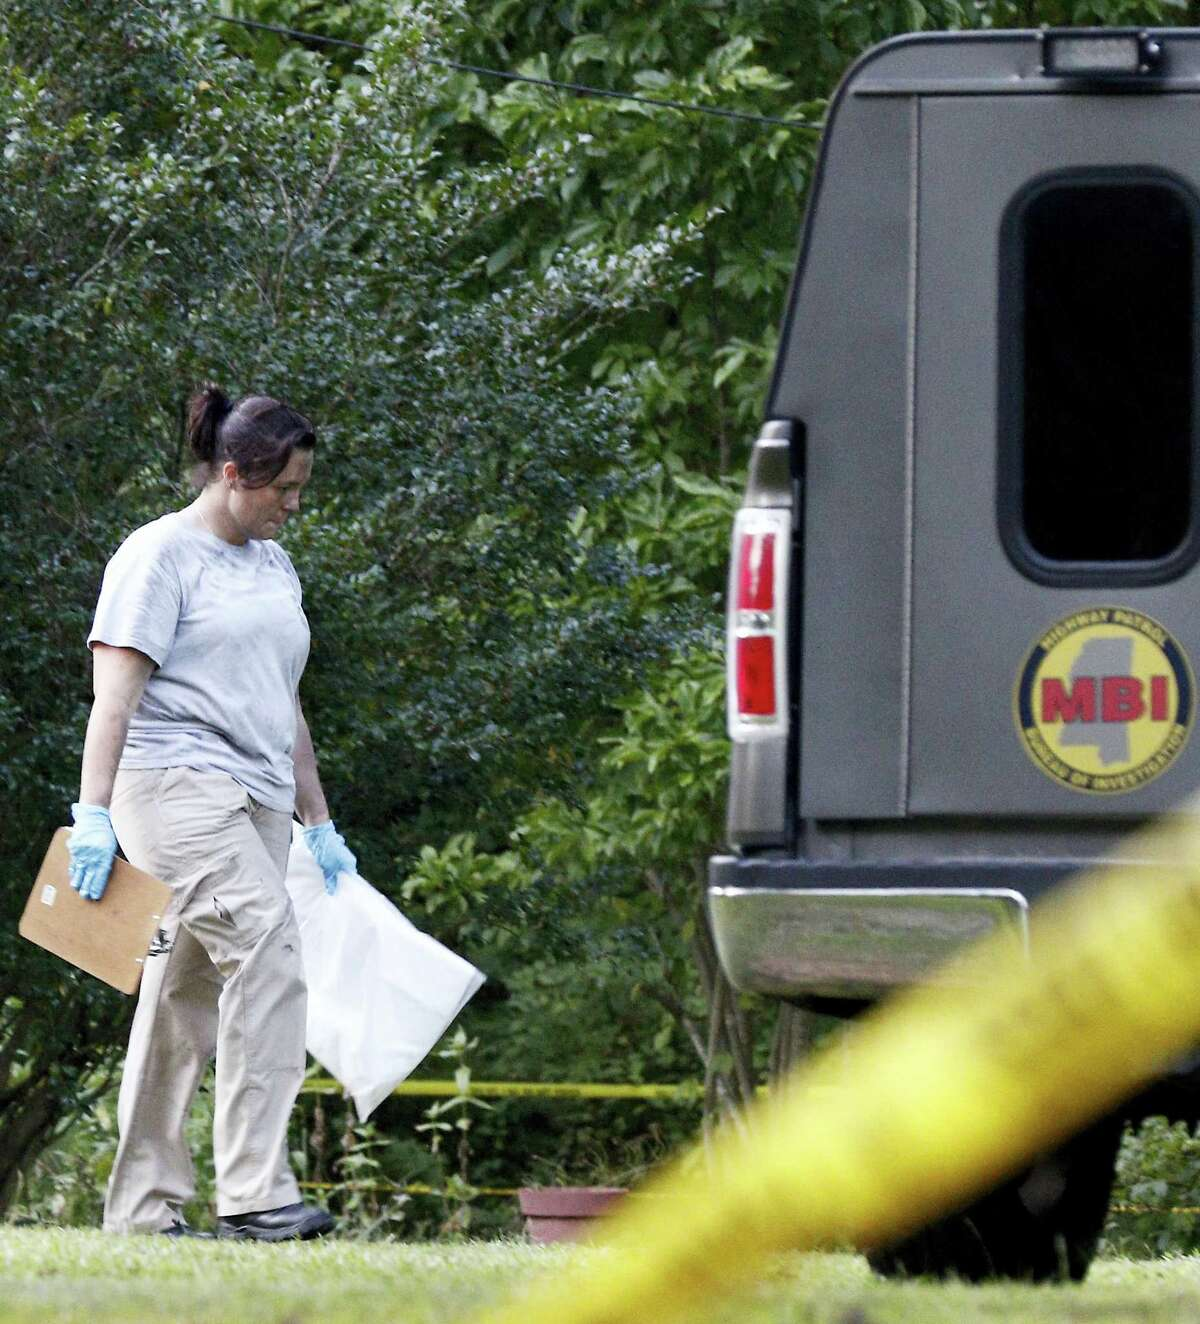 A Mississippi Bureau of Investigation agent takes a bag with evidence from the Durant, Miss., home of two slain Catholic nuns who worked as nurses at the Lexington Medical Clinic, to her vehicle, Thursday, Aug. 25, 2016. The clinic office manager and a Durant police officer discovered their bodies inside the house after both nuns did not report for work. Authorities said there were signs of a break-in and their vehicle was missing.